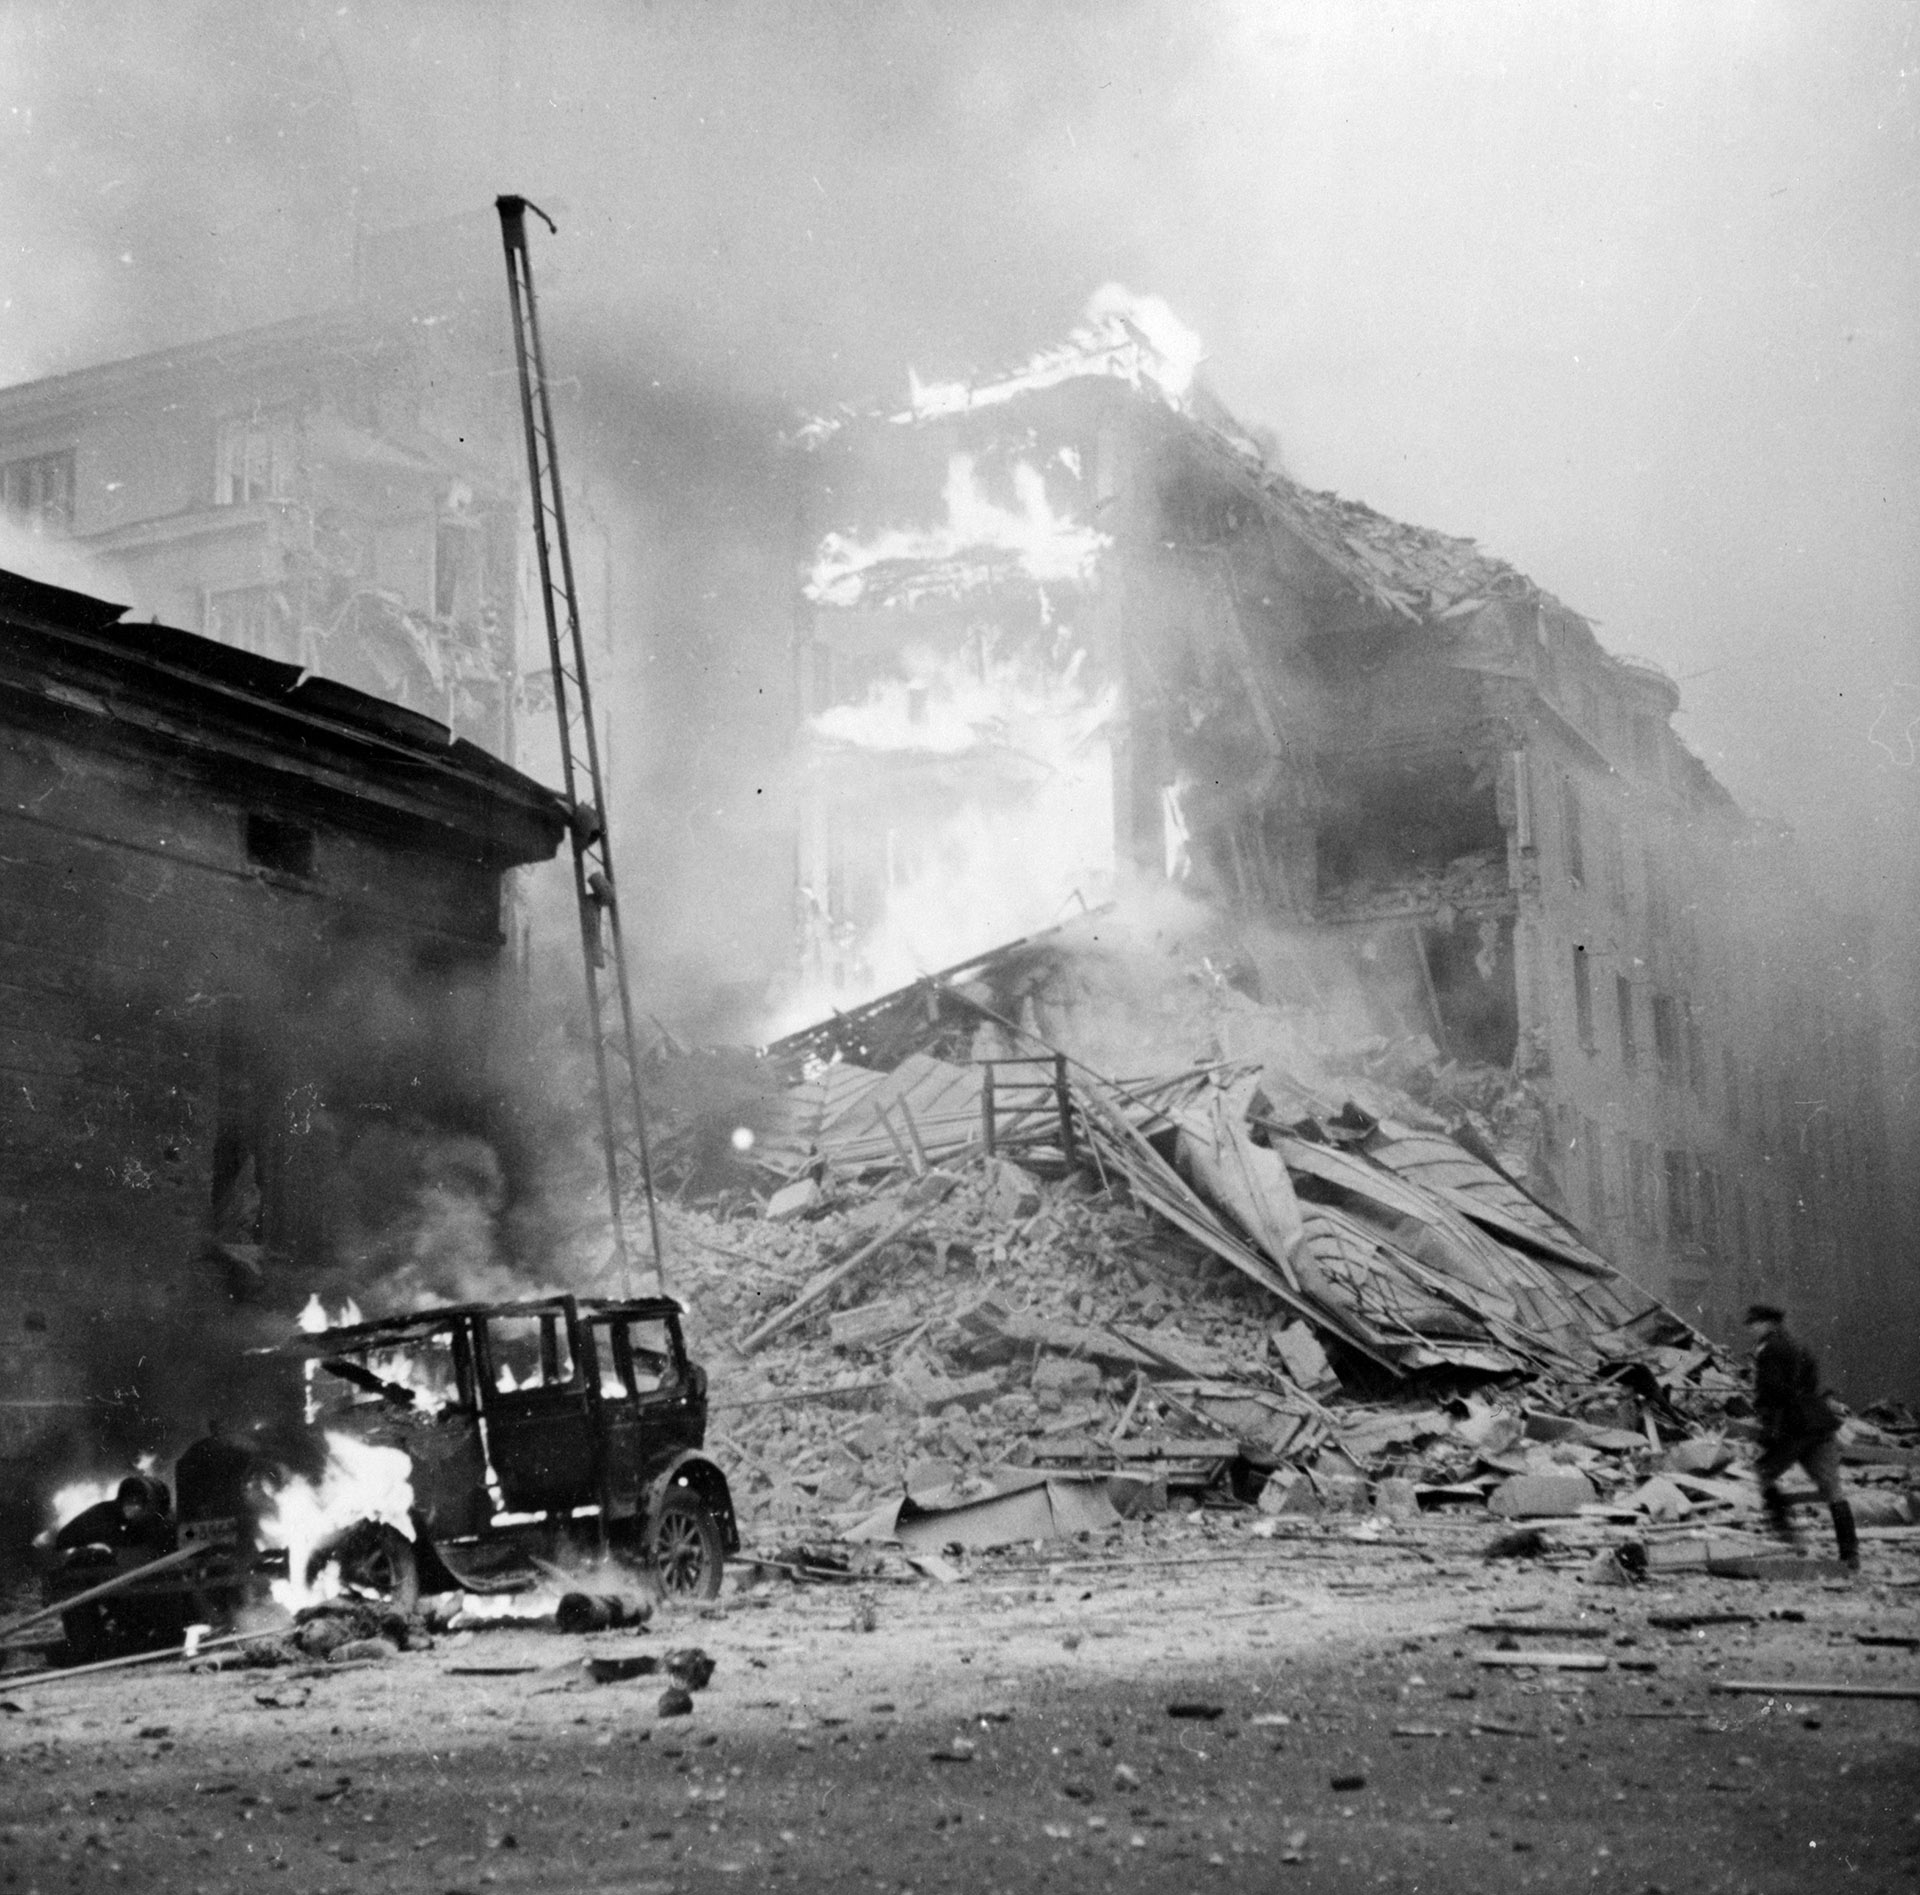 The aftermath of the Soviet bombers attack on the Finnish capital, Helsinki. (Credit: Fox Photos/Getty Images)